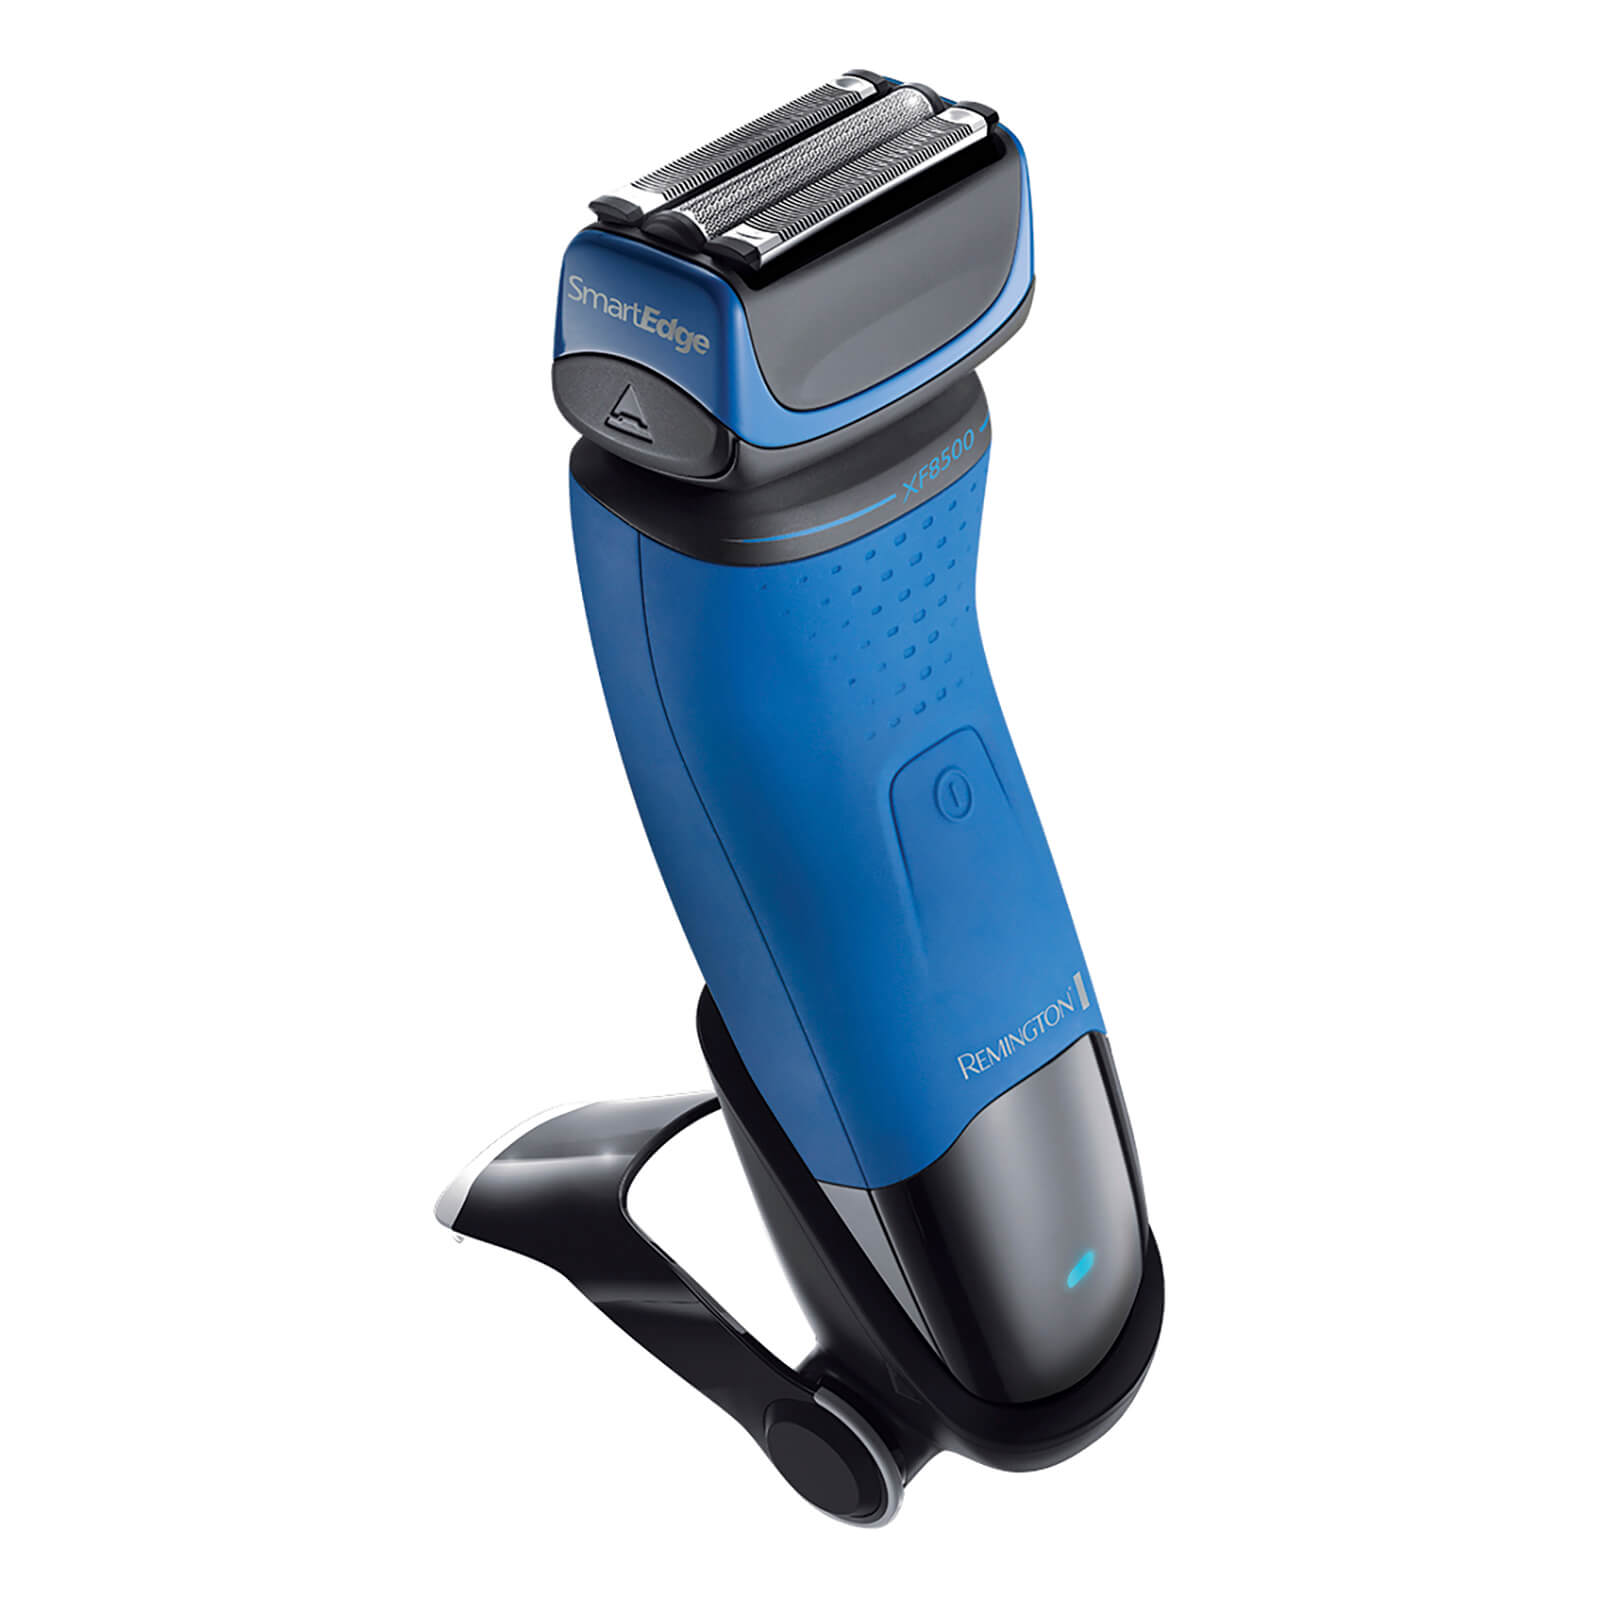 Remington XF8500 Smart Edge Shaver - Blue